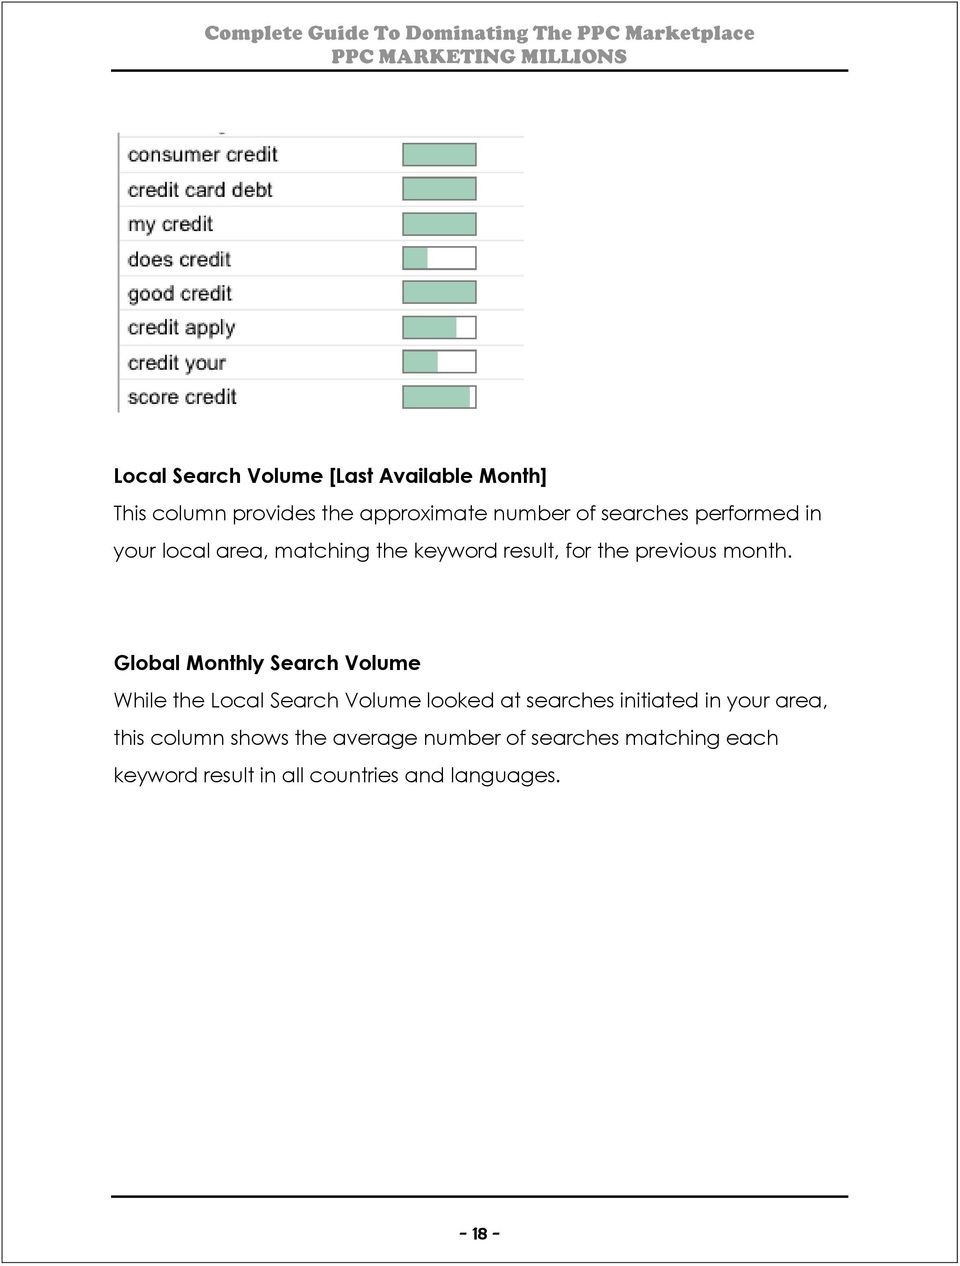 Global Monthly Search Volume While the Local Search Volume looked at searches initiated in your